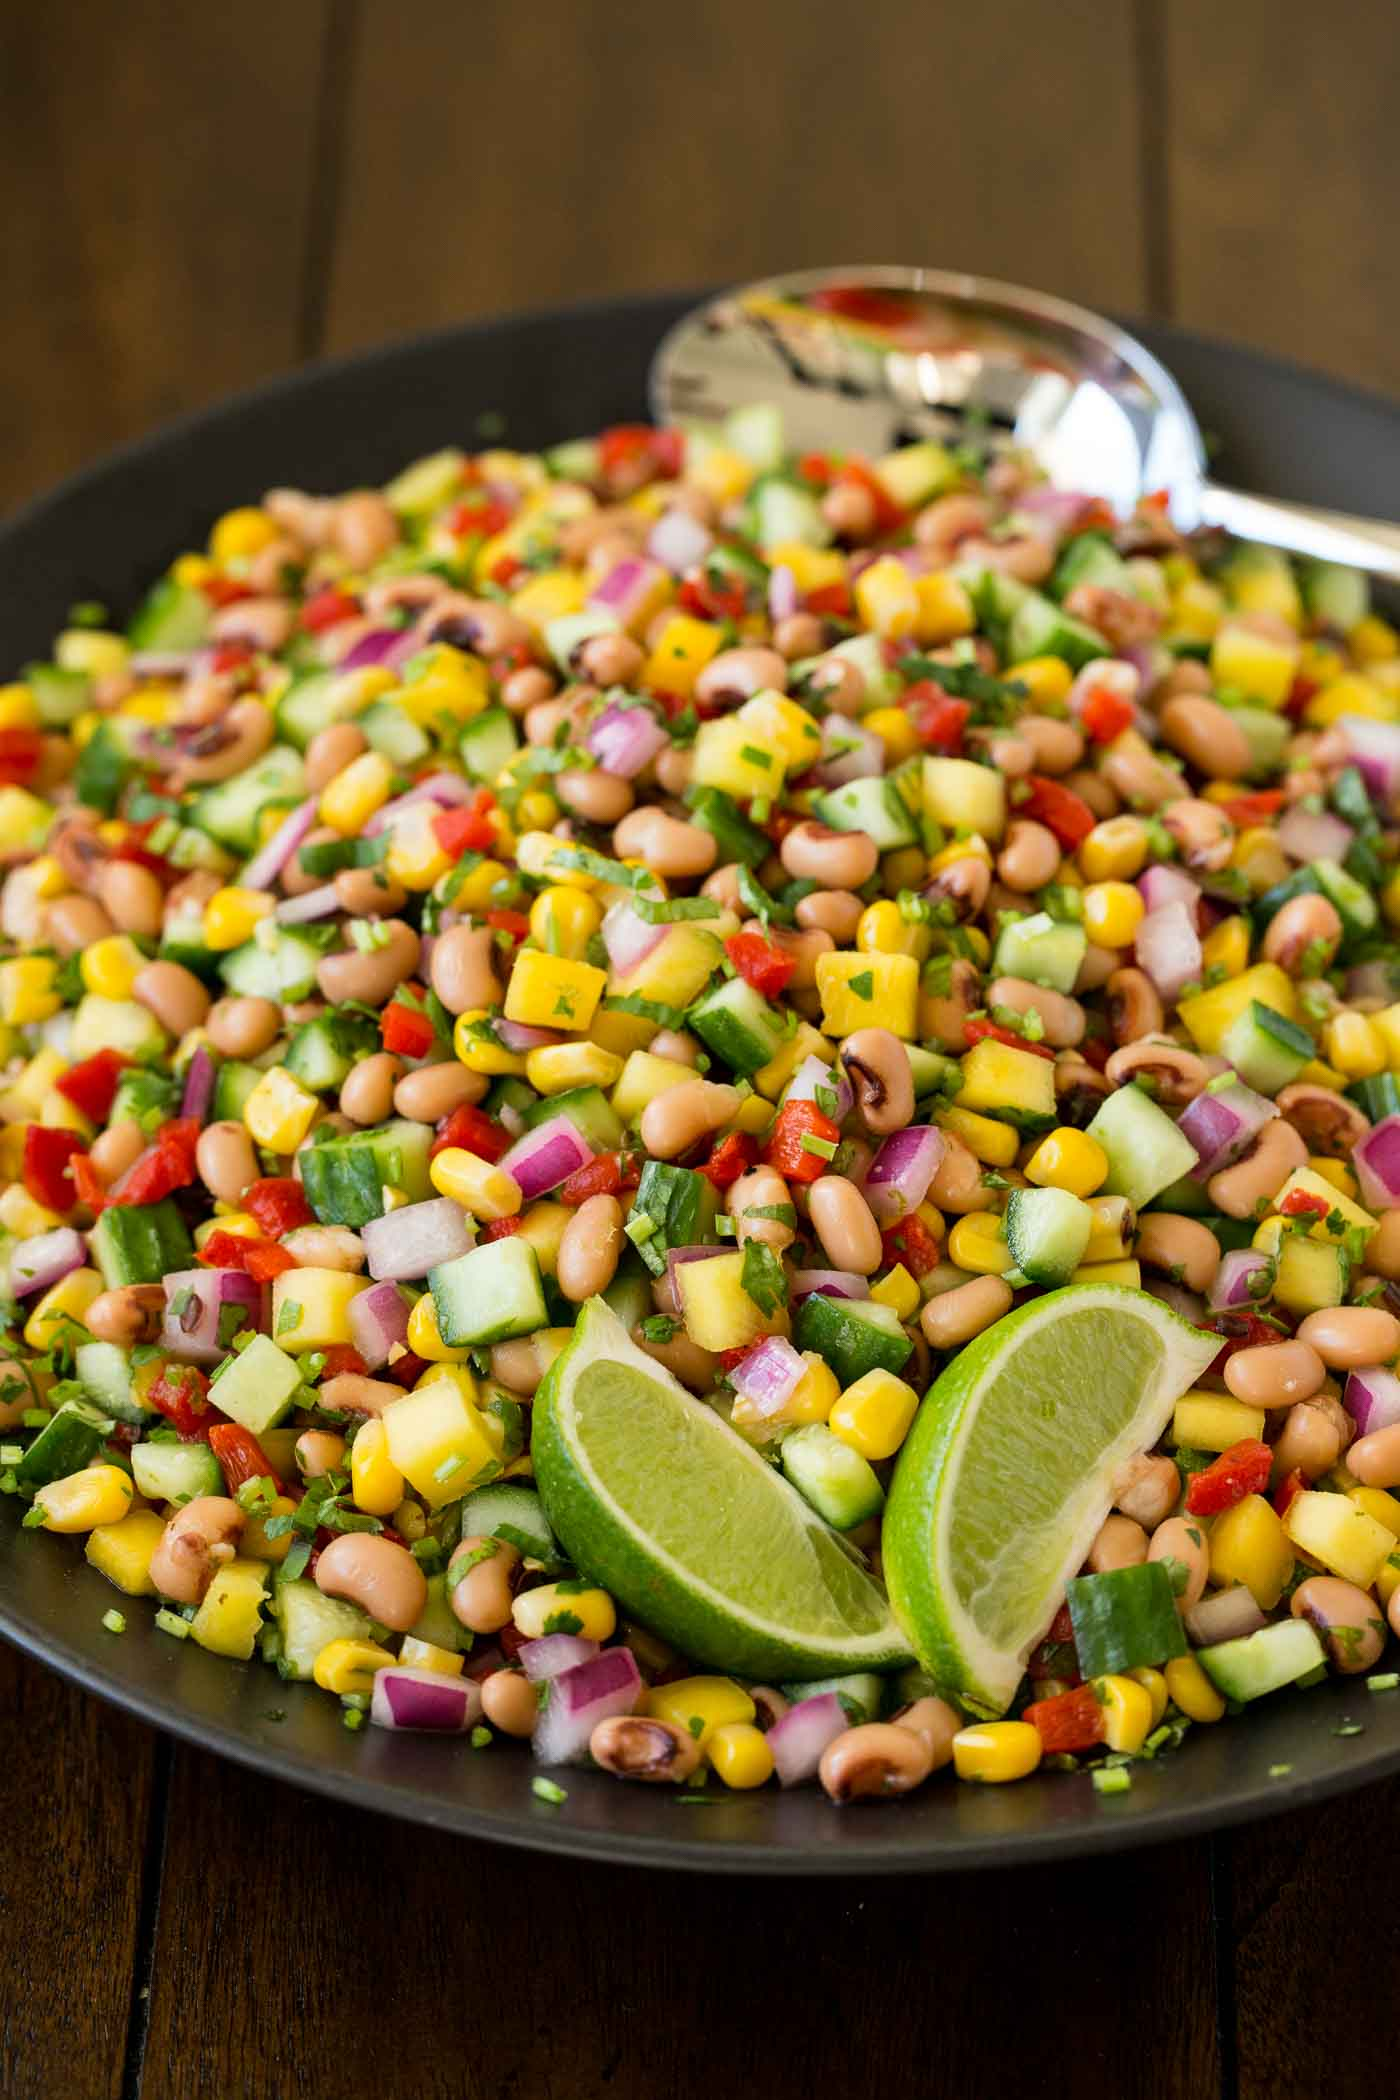 Photo of a black serving dish of Black-Eyed Pea Salad garnished with wedges of lime on a wood table.